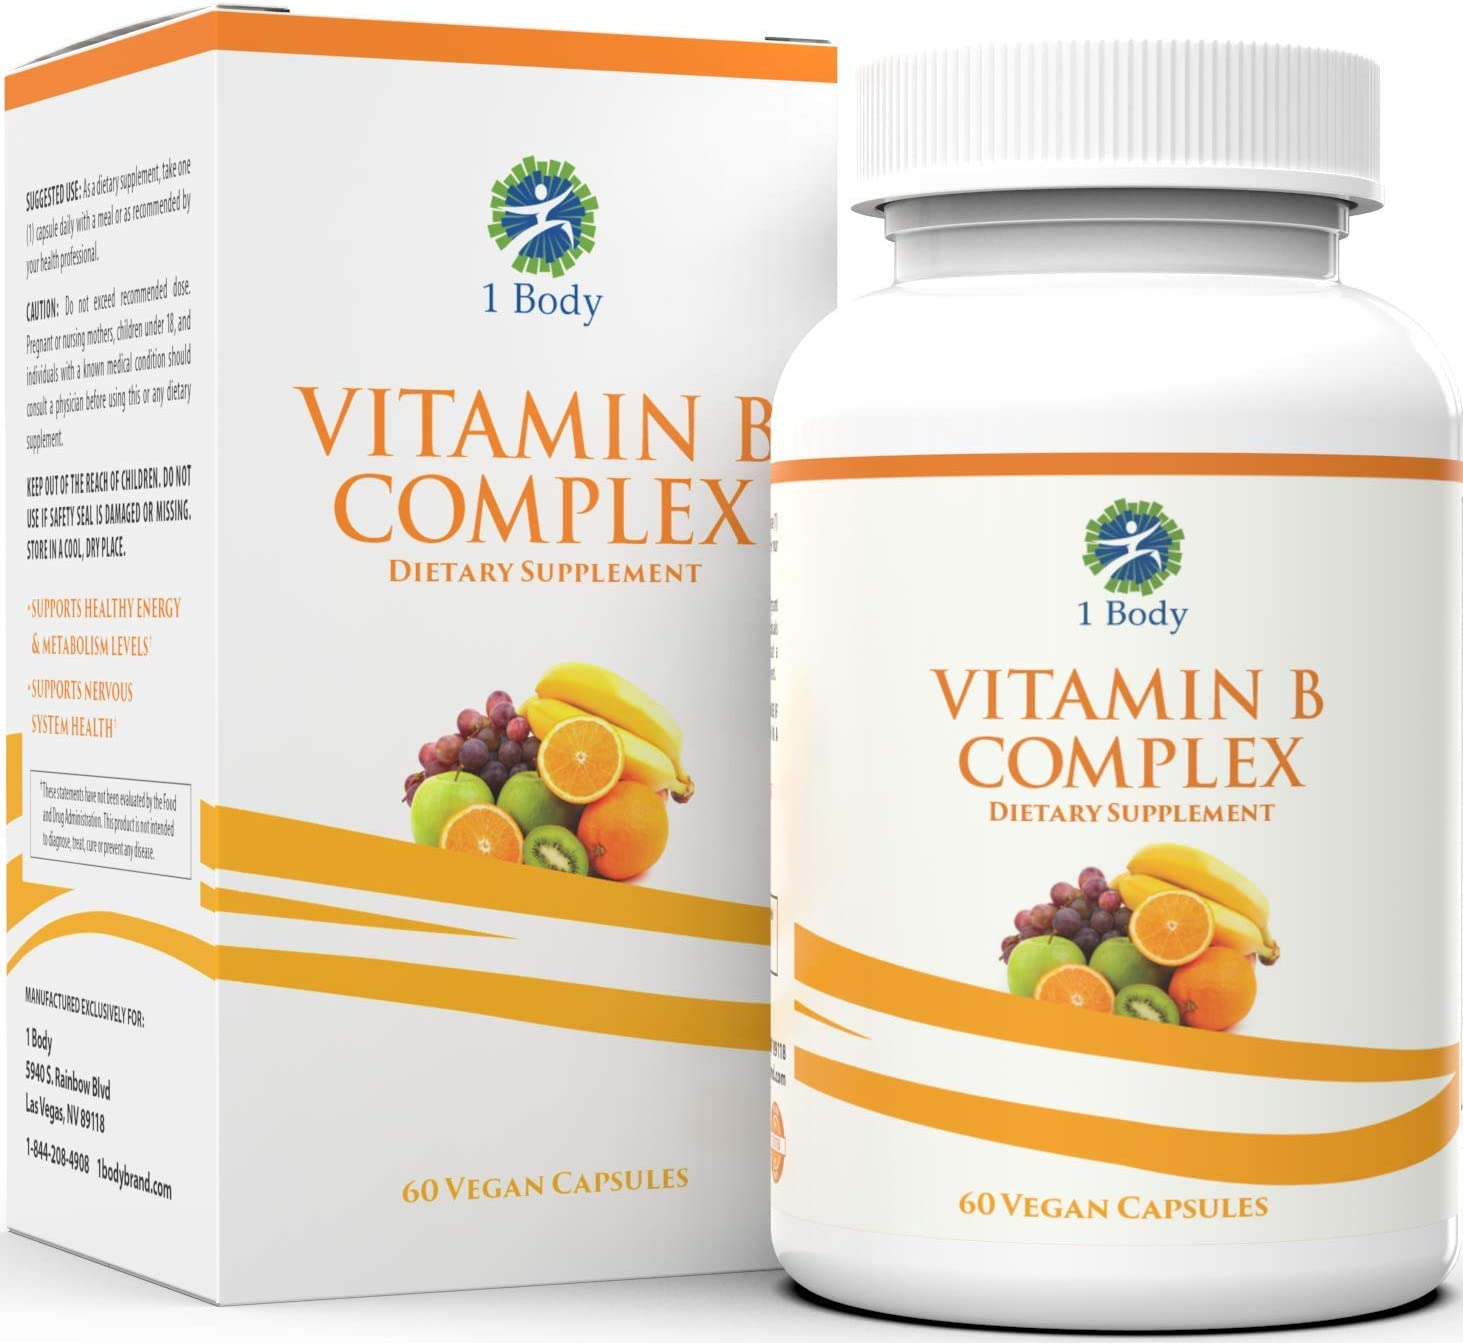 Vitamin B Complex – 5-MTHF Folate with B1, B2, B5, B6, Methyl B12, Niacin, Biotin – Wide Range of Benefits for Stress, Heart Health, Healthy Brain Function, Nervous System Support